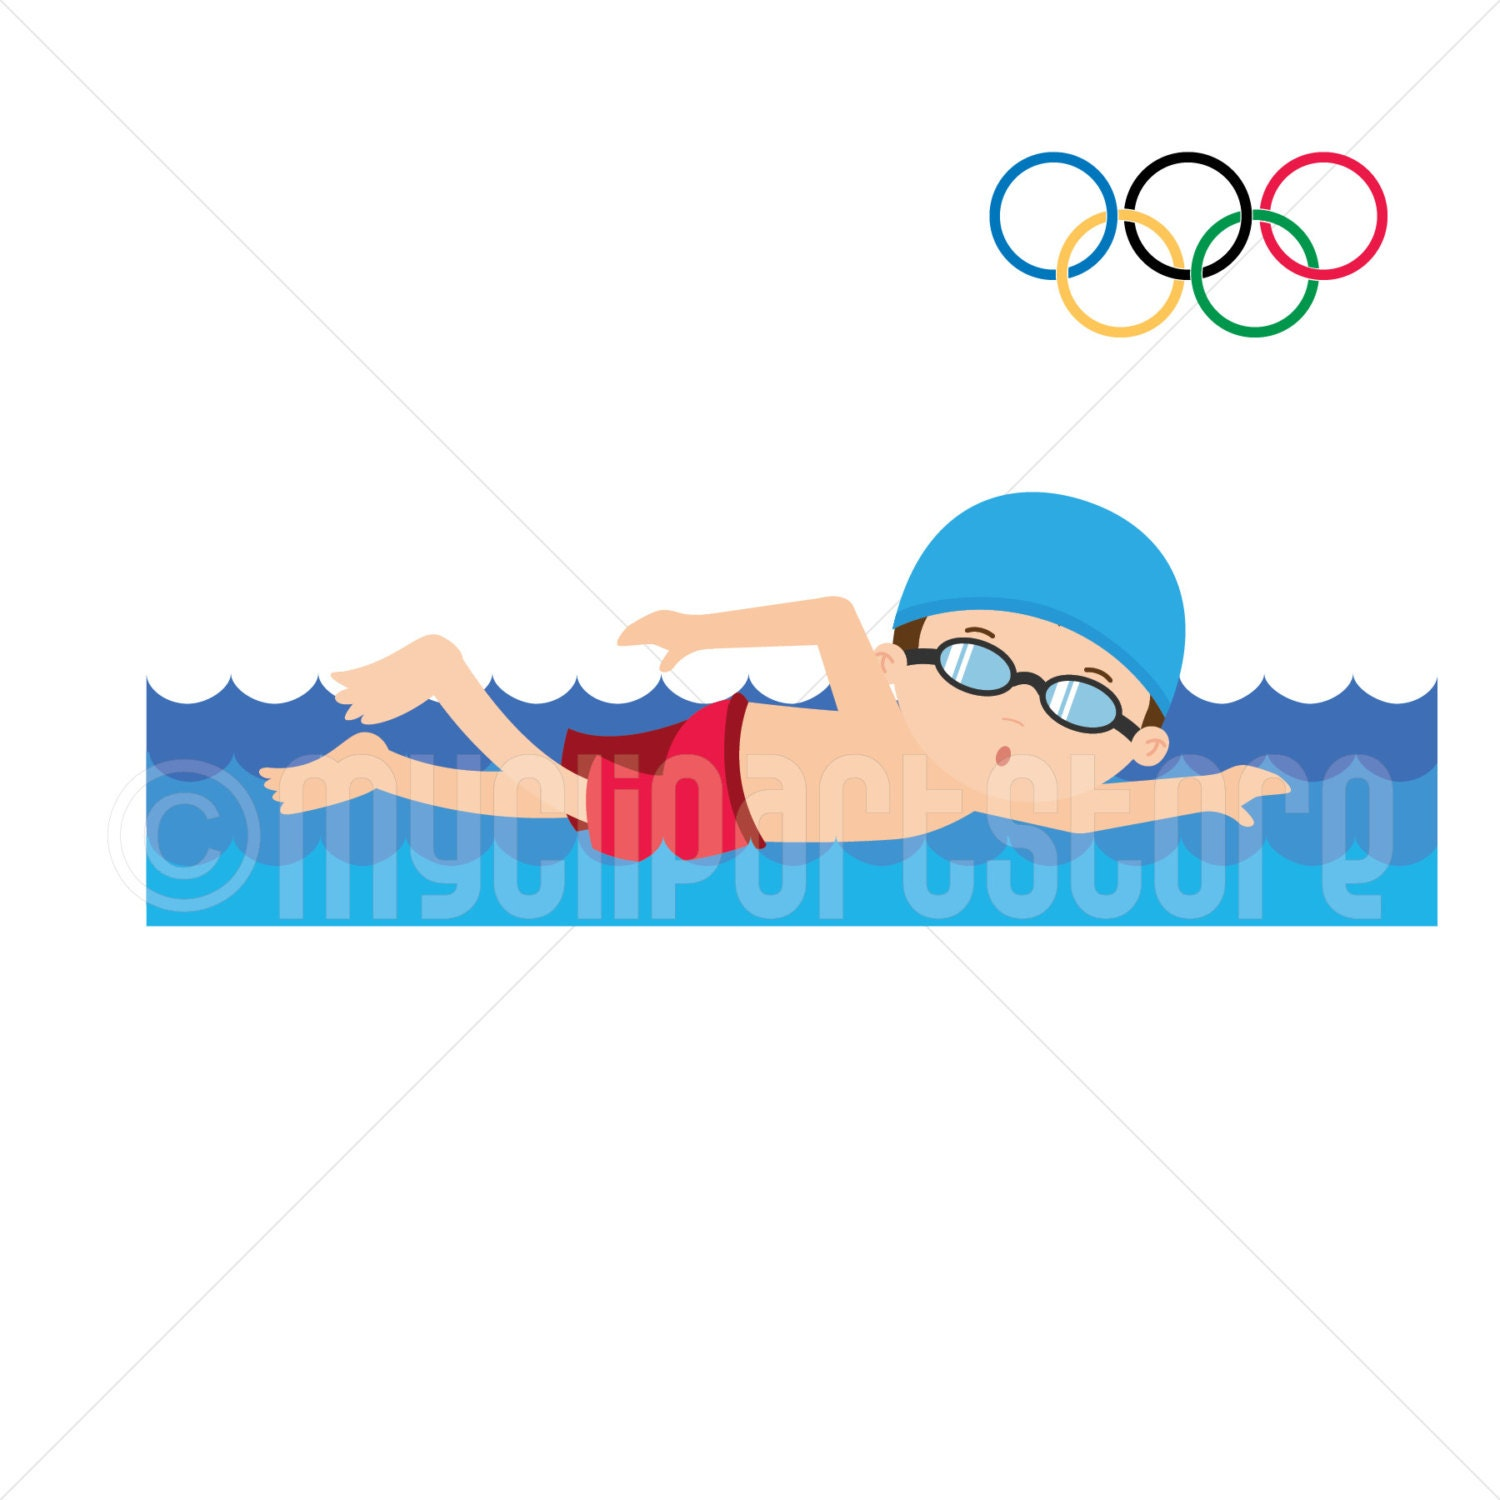 clipart summer olympics clipart swimming olympic games rh etsy com swimming clip art images swimming clipart